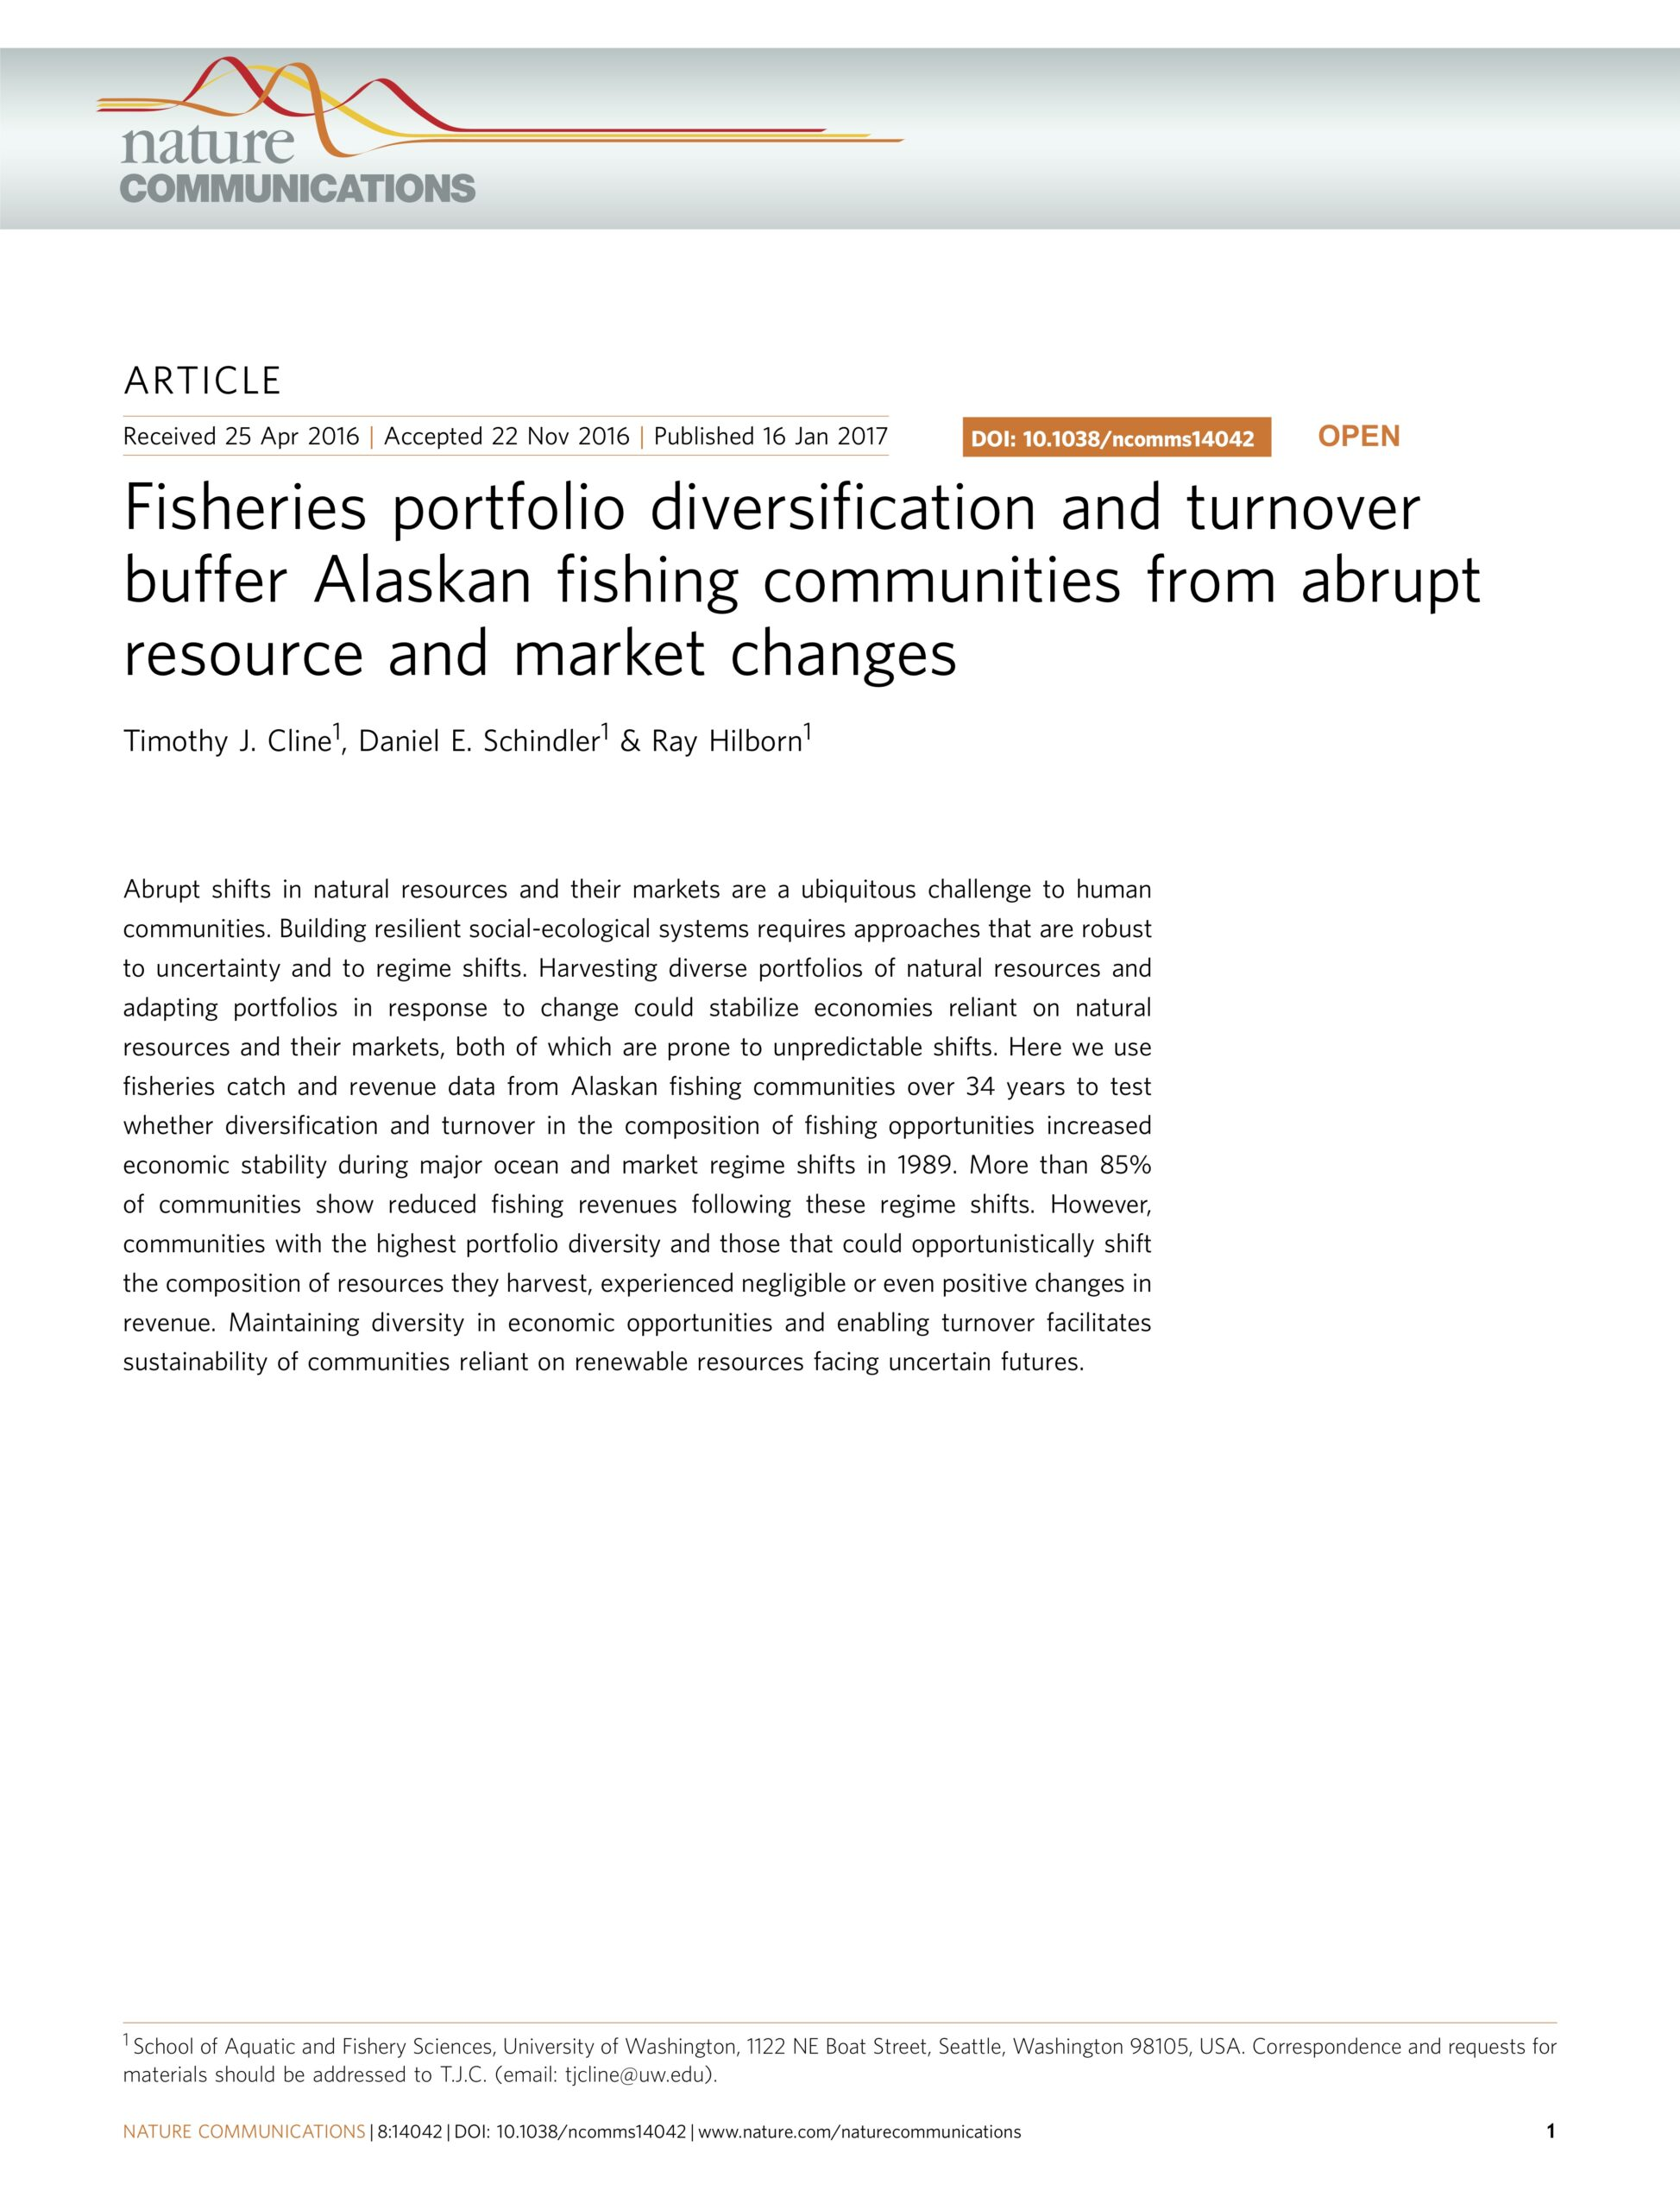 Cline et al. 2017:  Fisheries portfolio diversification and turnover buffer Alaskan fishing communities from abrupt resource and market changes